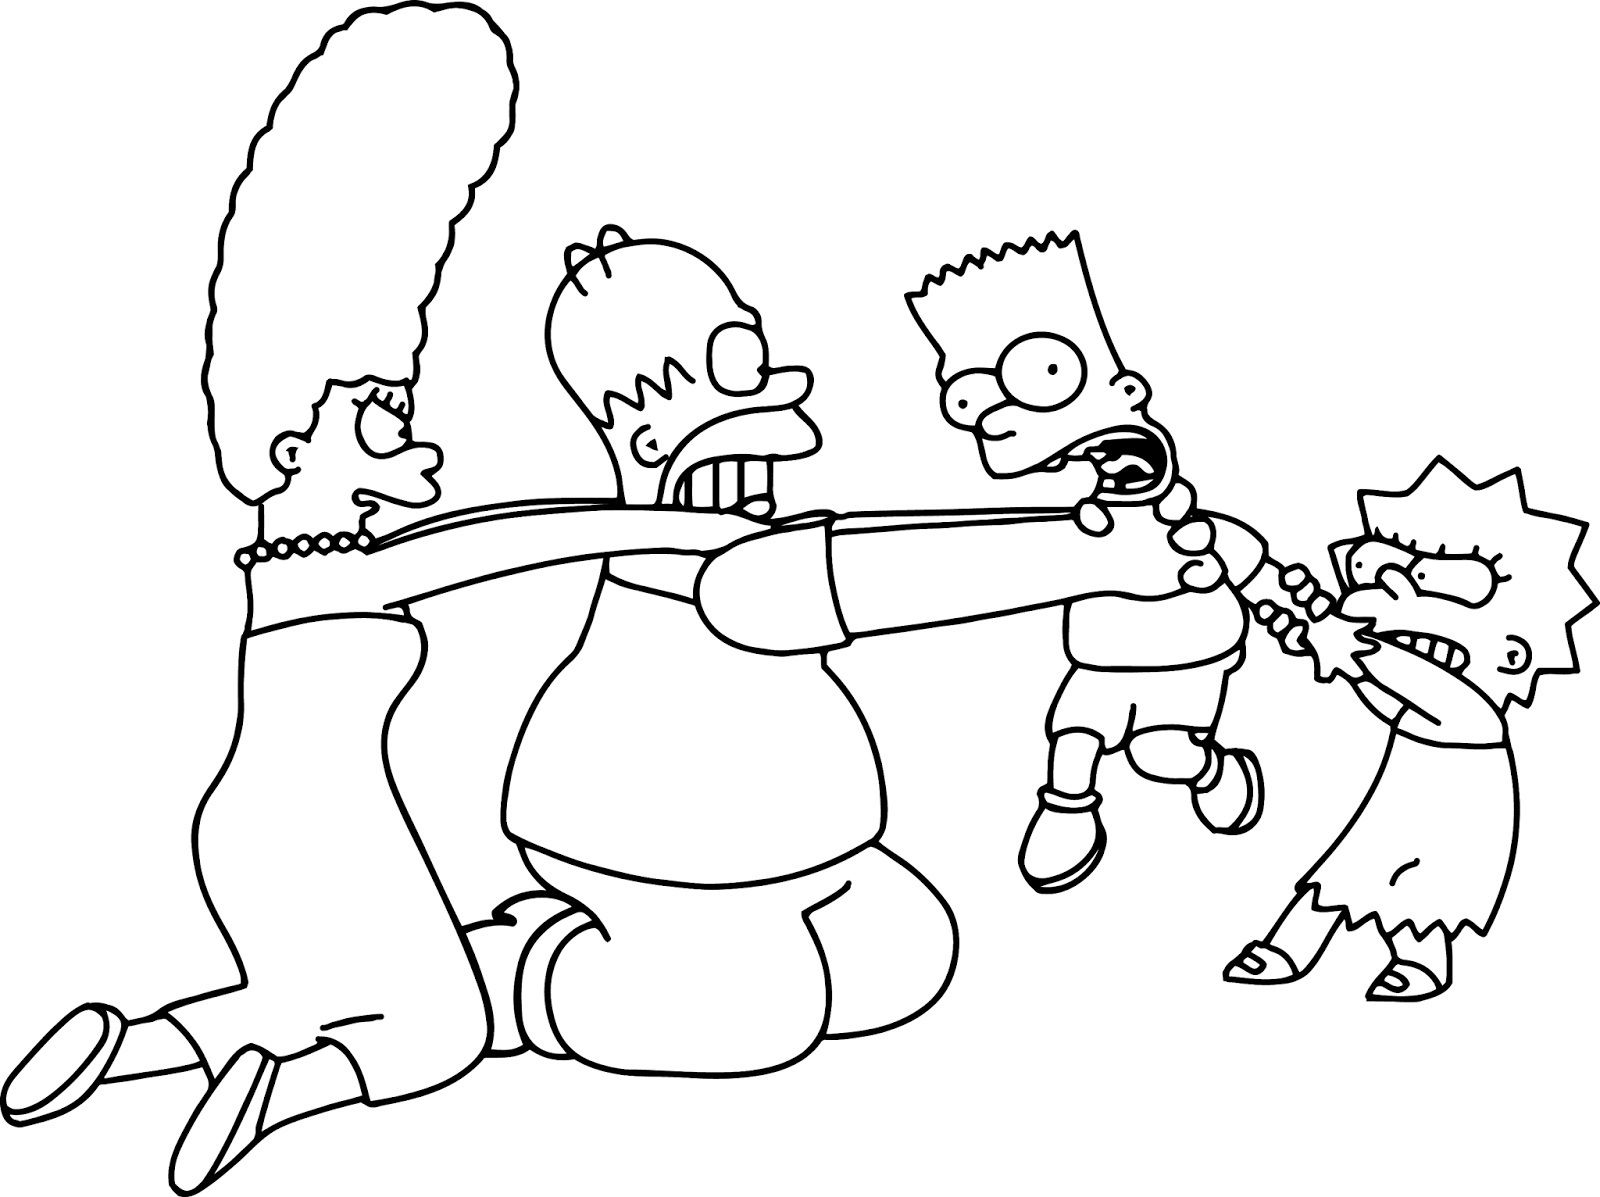 Printable homer simpson coloring pages murderthestout for Coloring pages simpsons